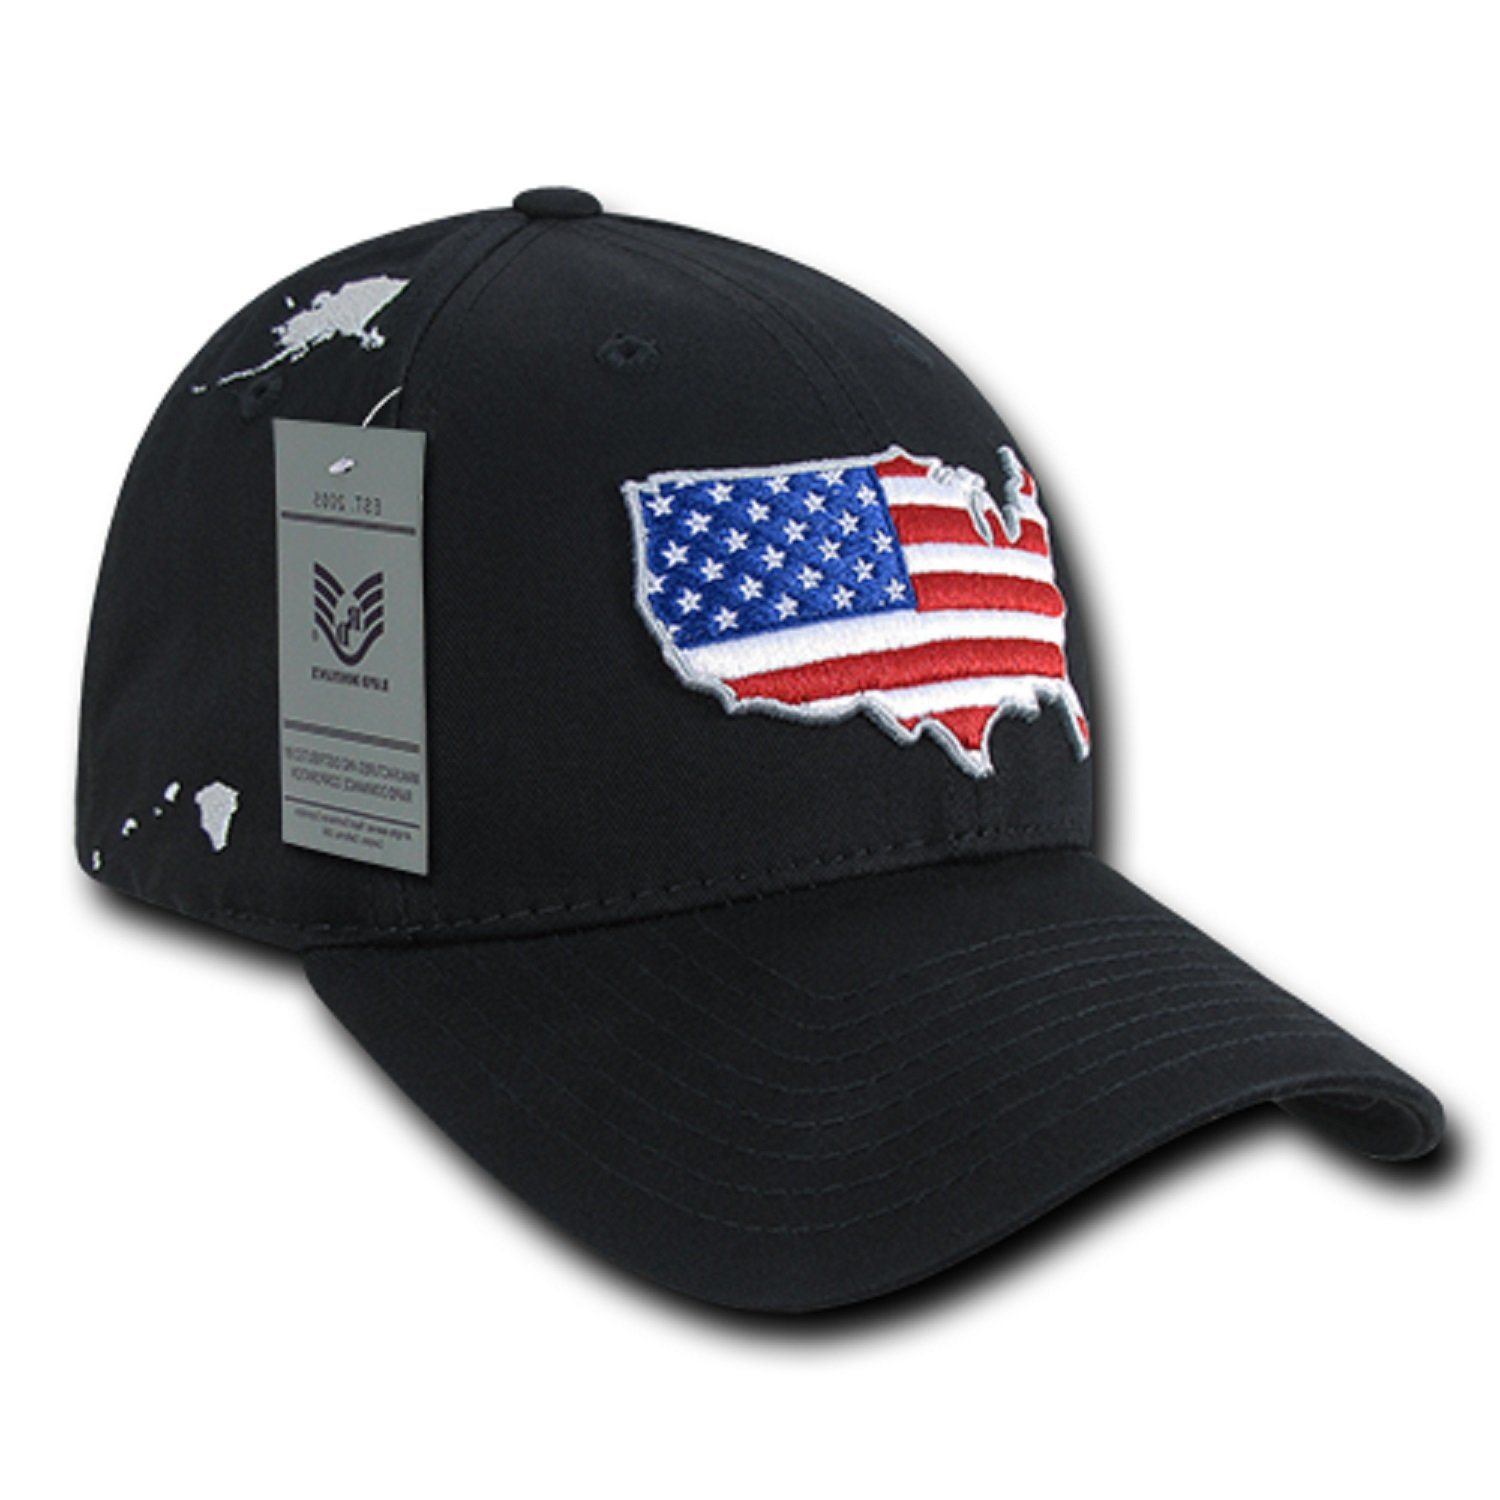 2ae361eaac2c3 Black USA US American Flag United States America Low Crown Structured Baseball  Hat Cap at Amazon Men s Clothing store